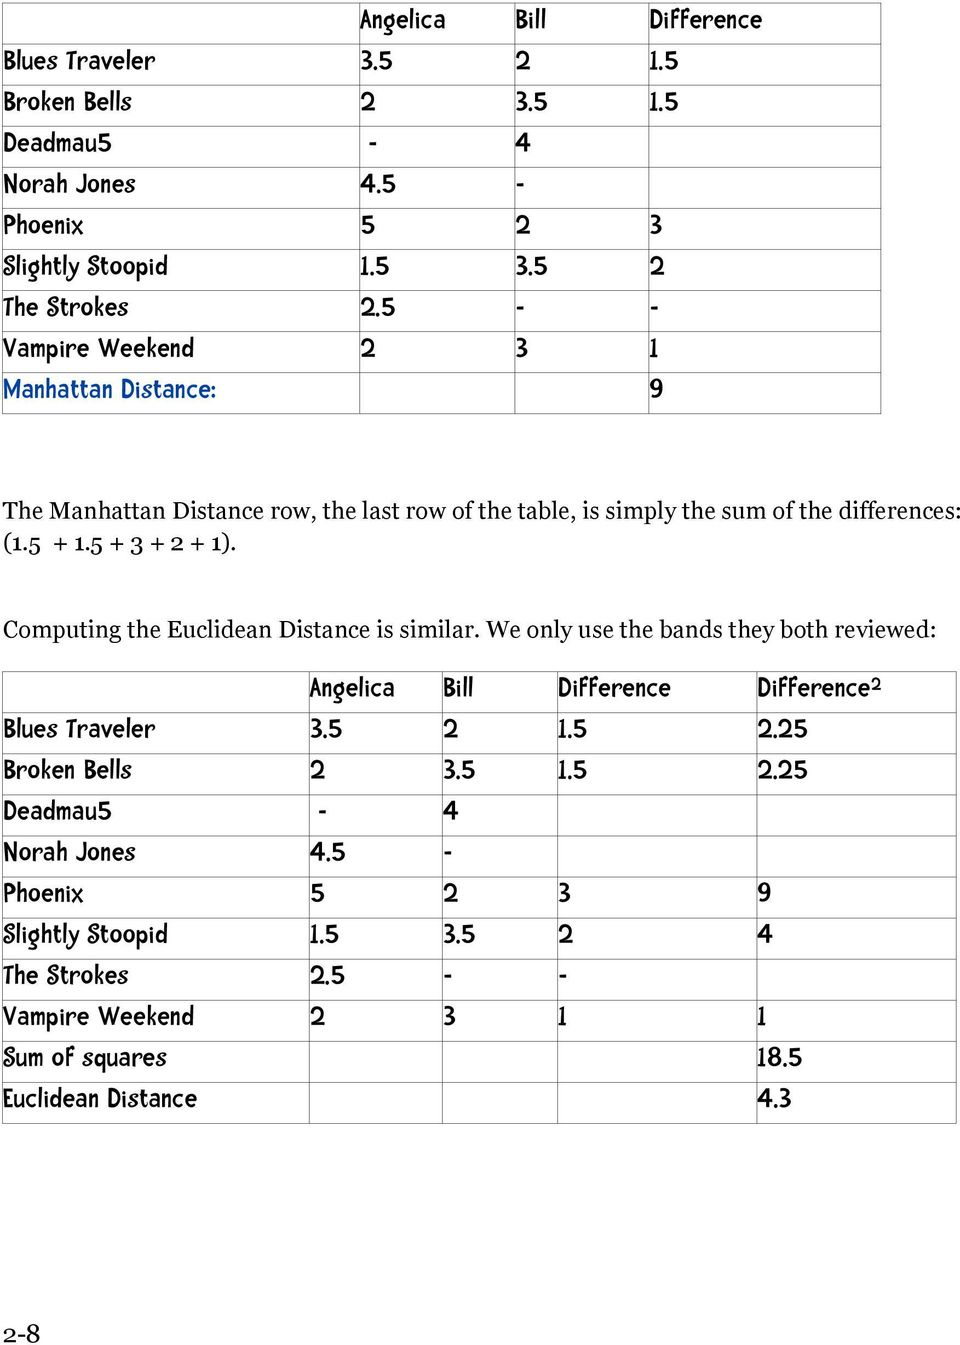 Computing the Euclidean Distance is similar. We only use the bands they both reviewed: Angelica Bill Difference Difference 2 Blues Traveler 3.5 2 1.5 2.25 Broken Bells 2 3.